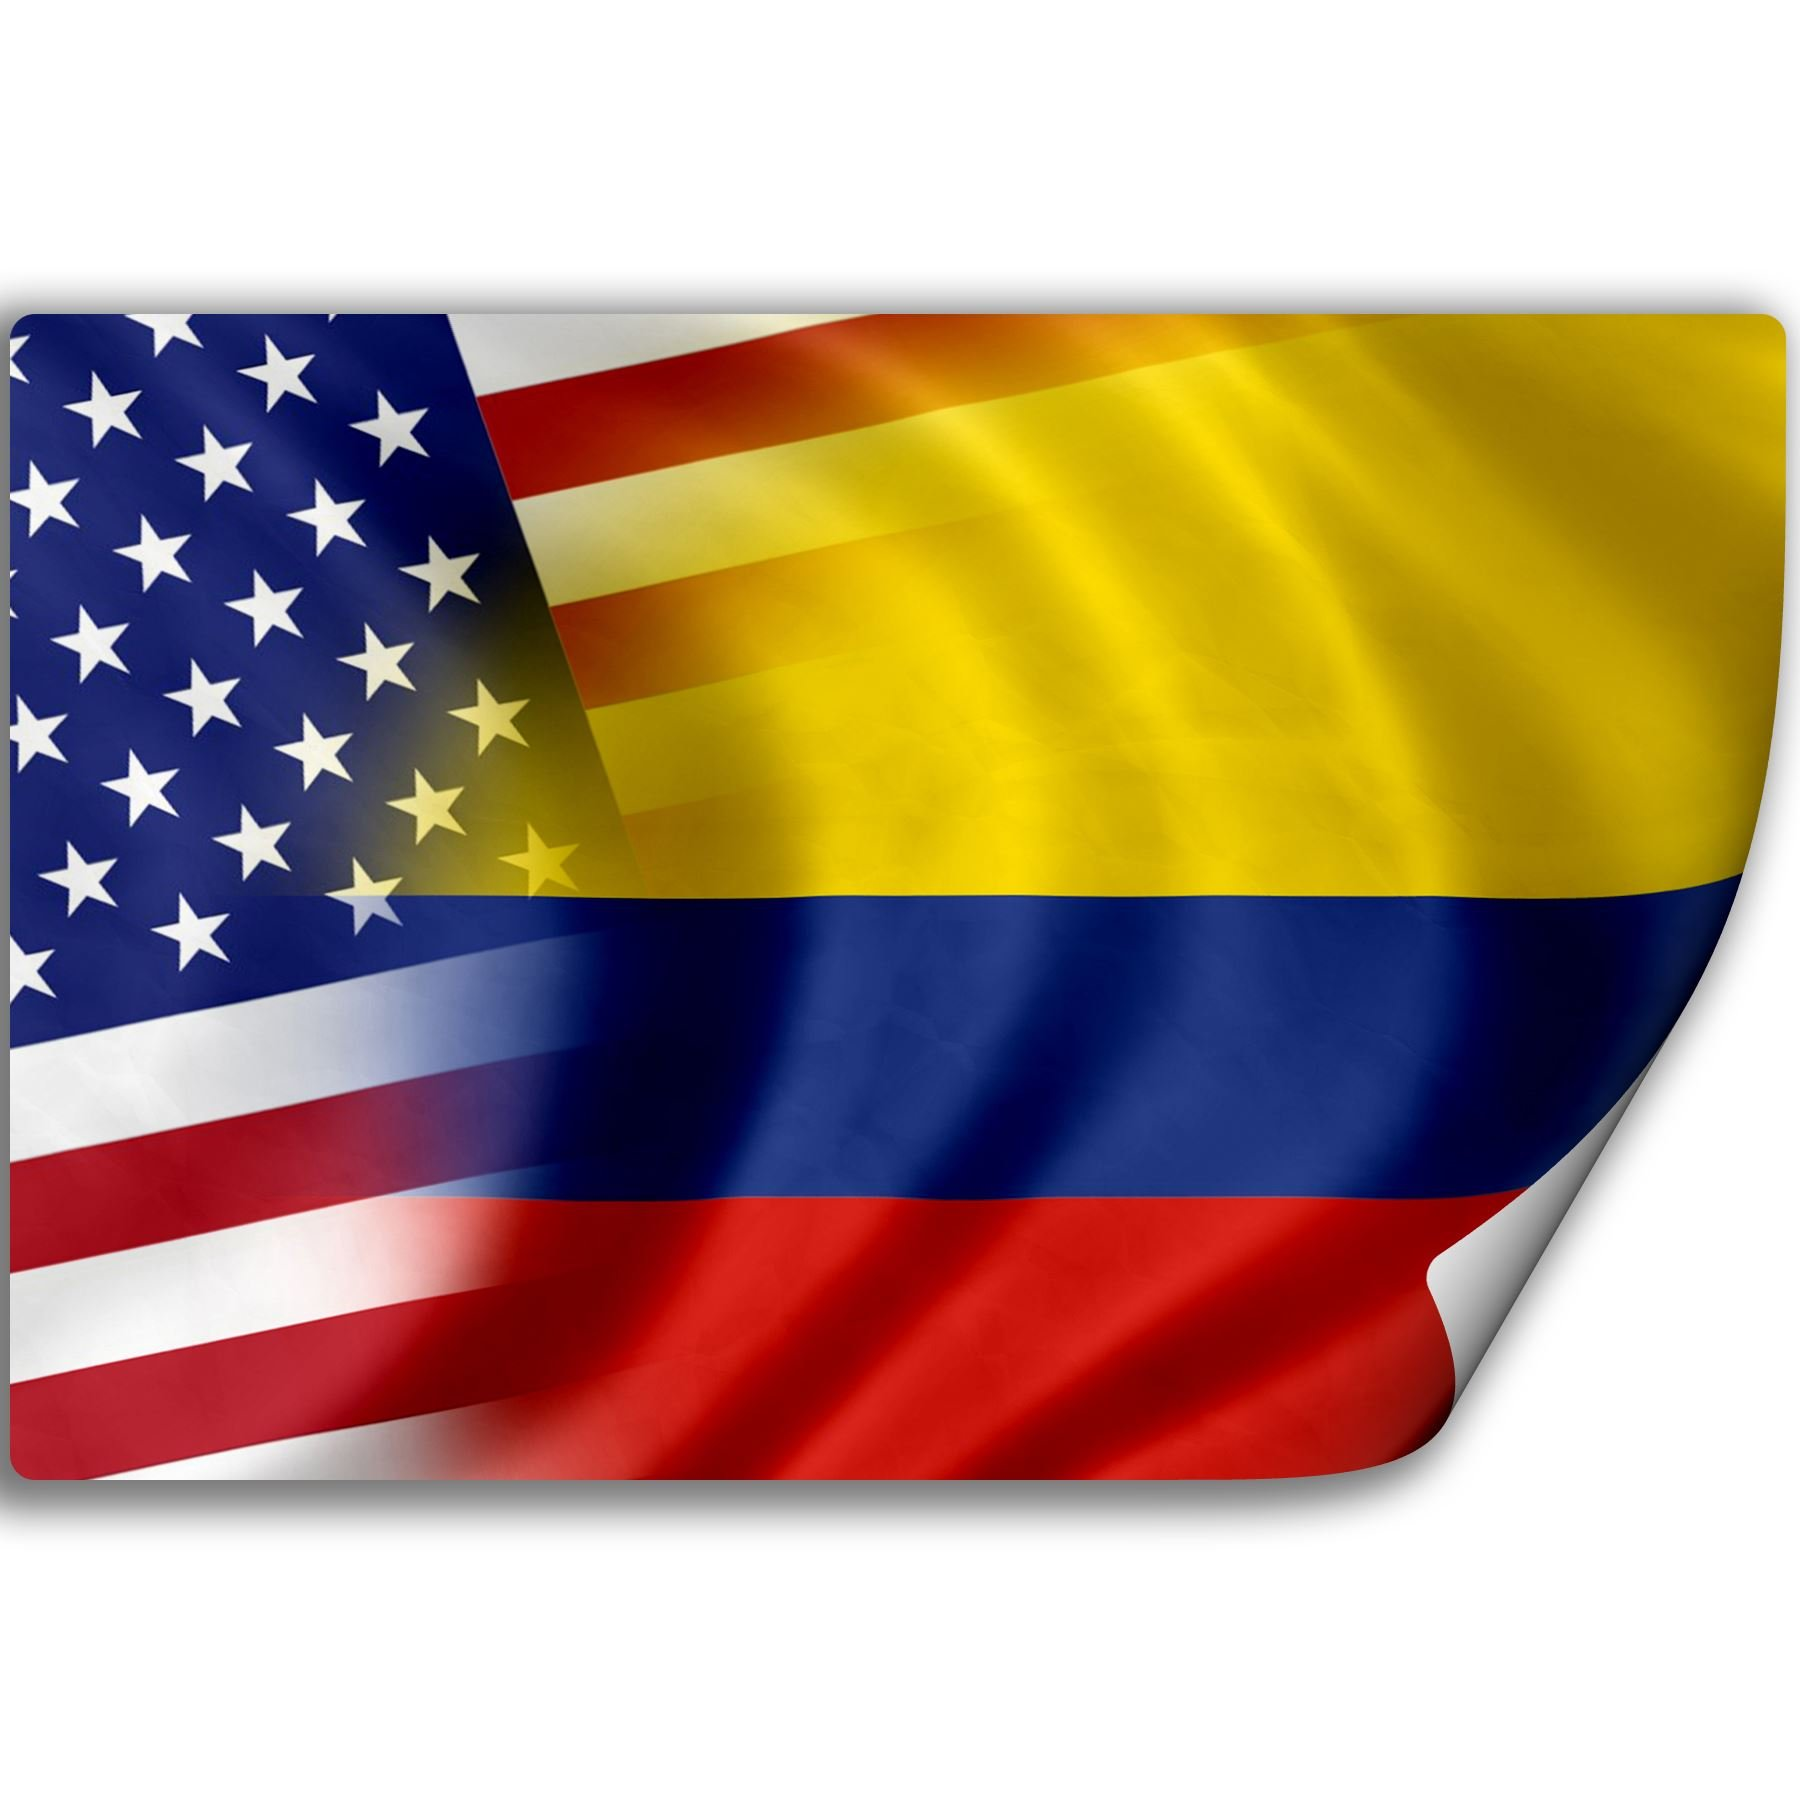 ExpressItBest Sticker (Decal) with Flag of Colombia and USA (Colombian)